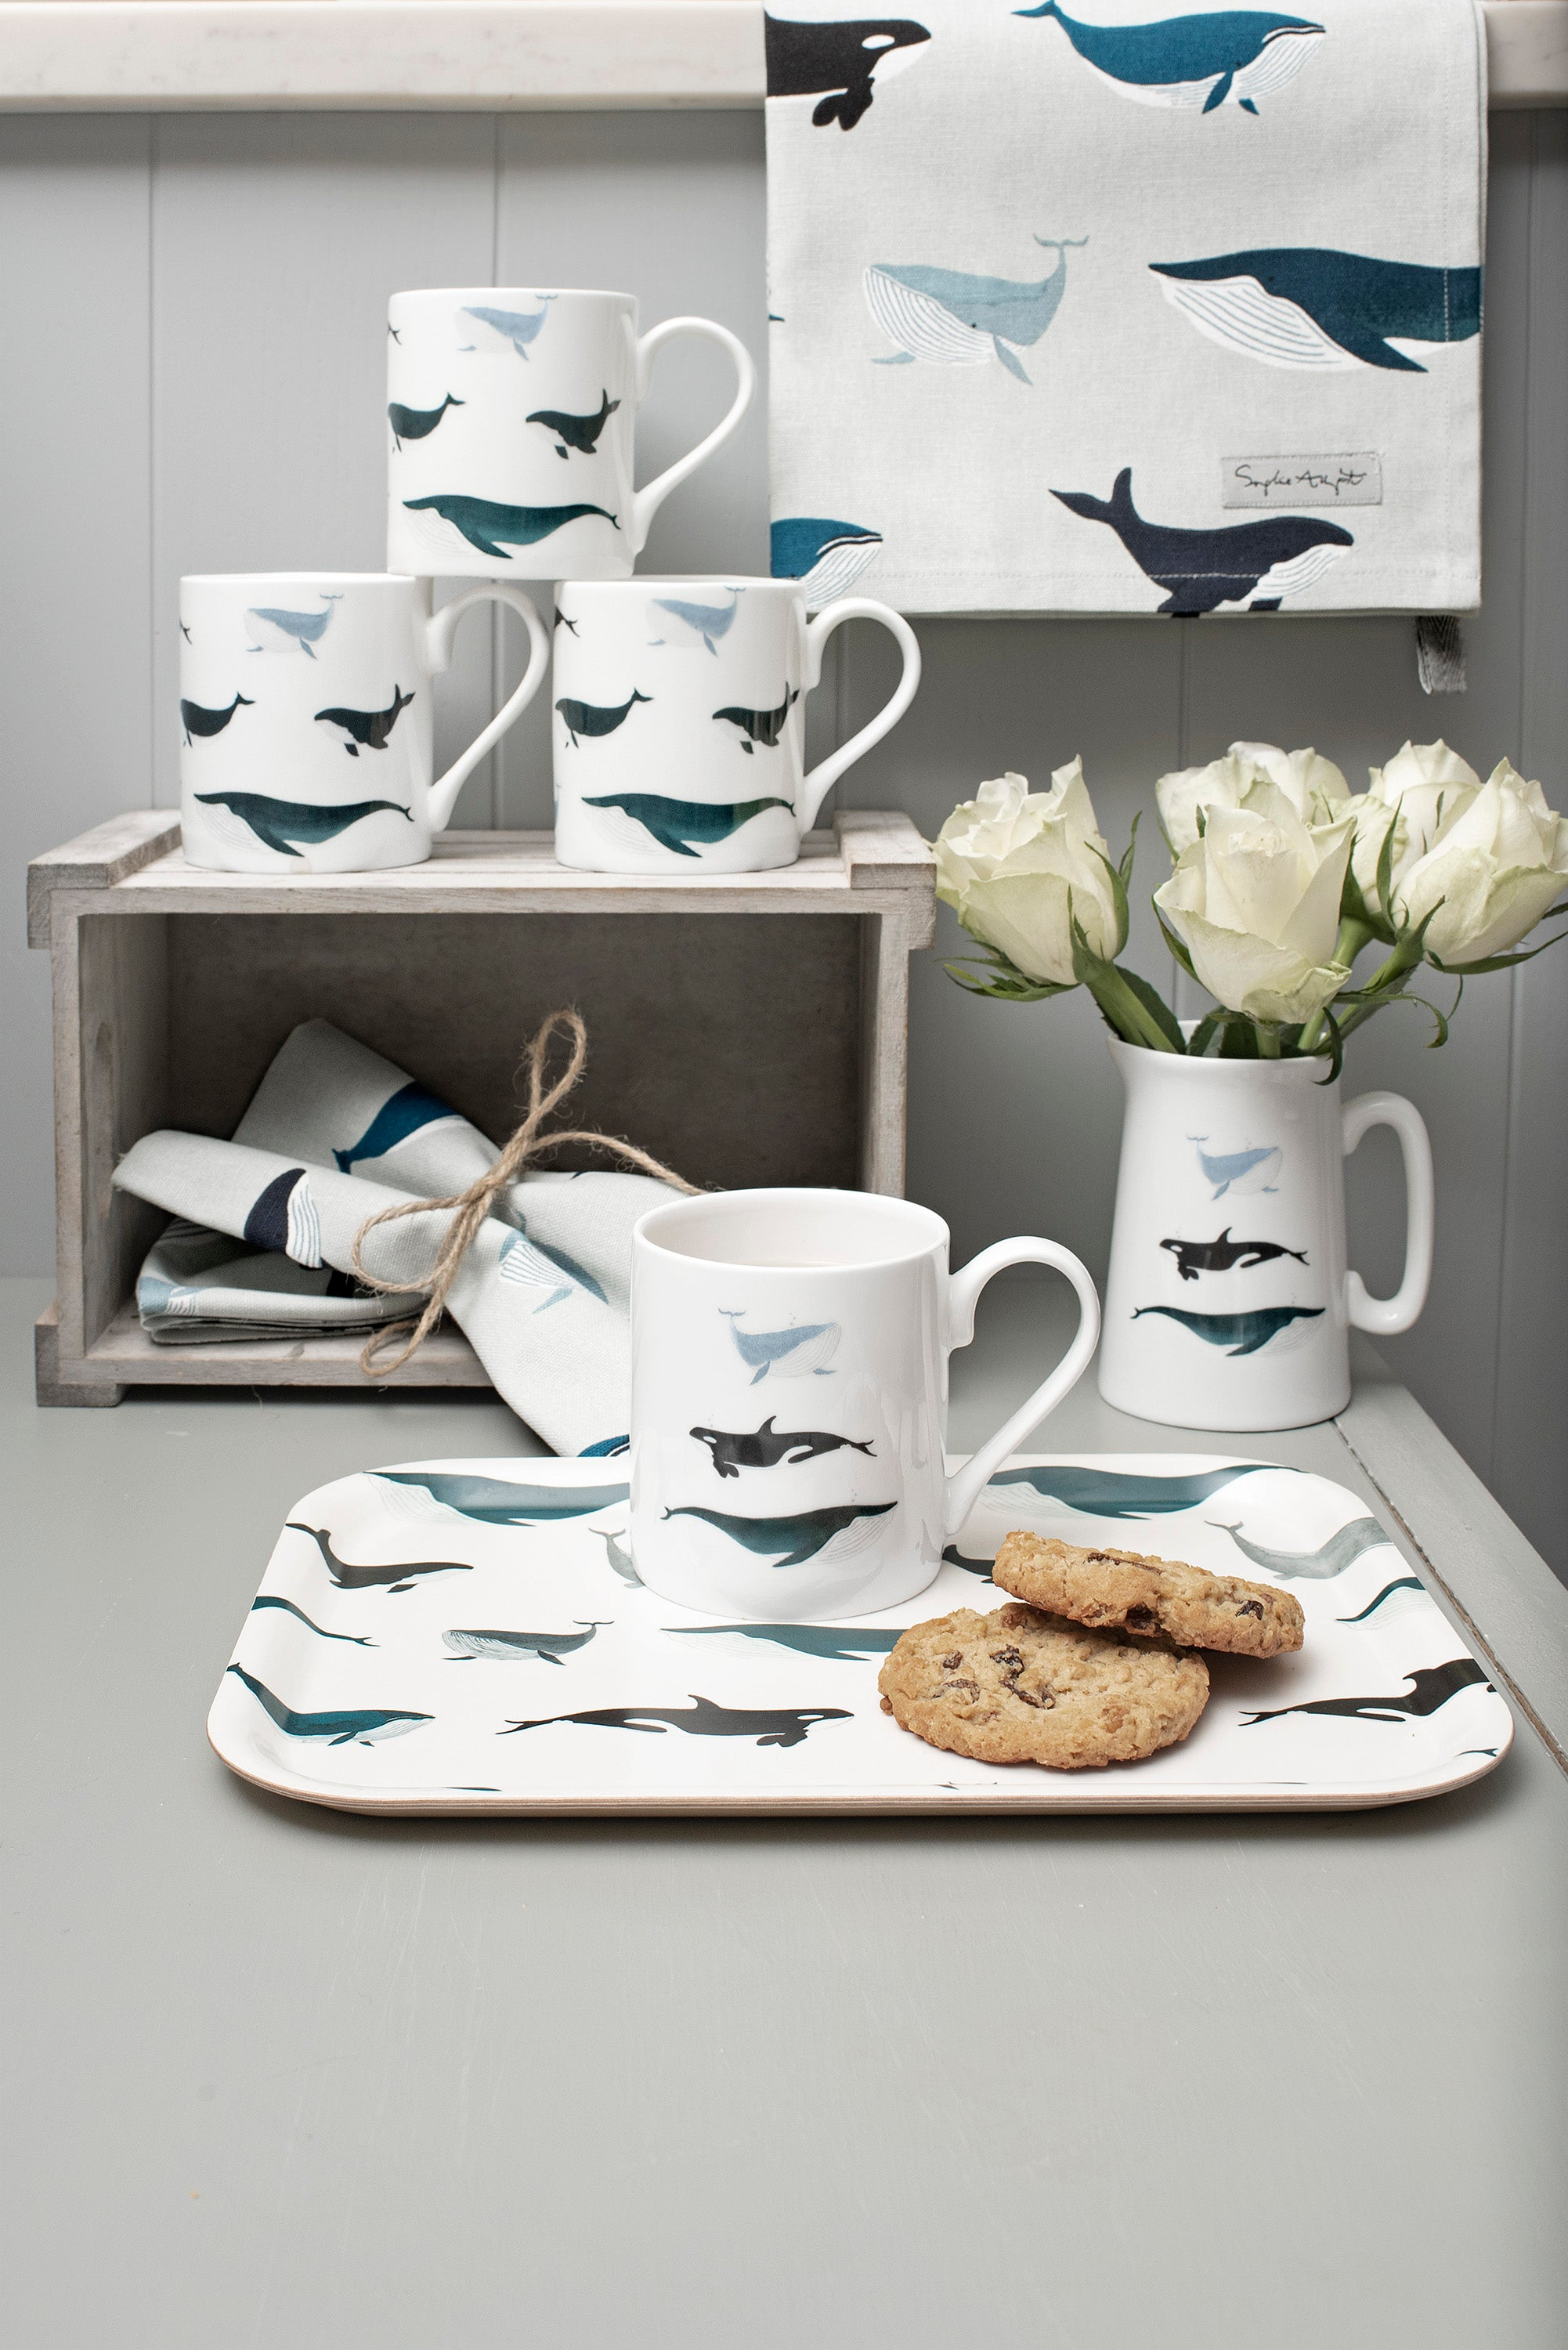 Whales fine bone china mugs and jug by Sophie Allport